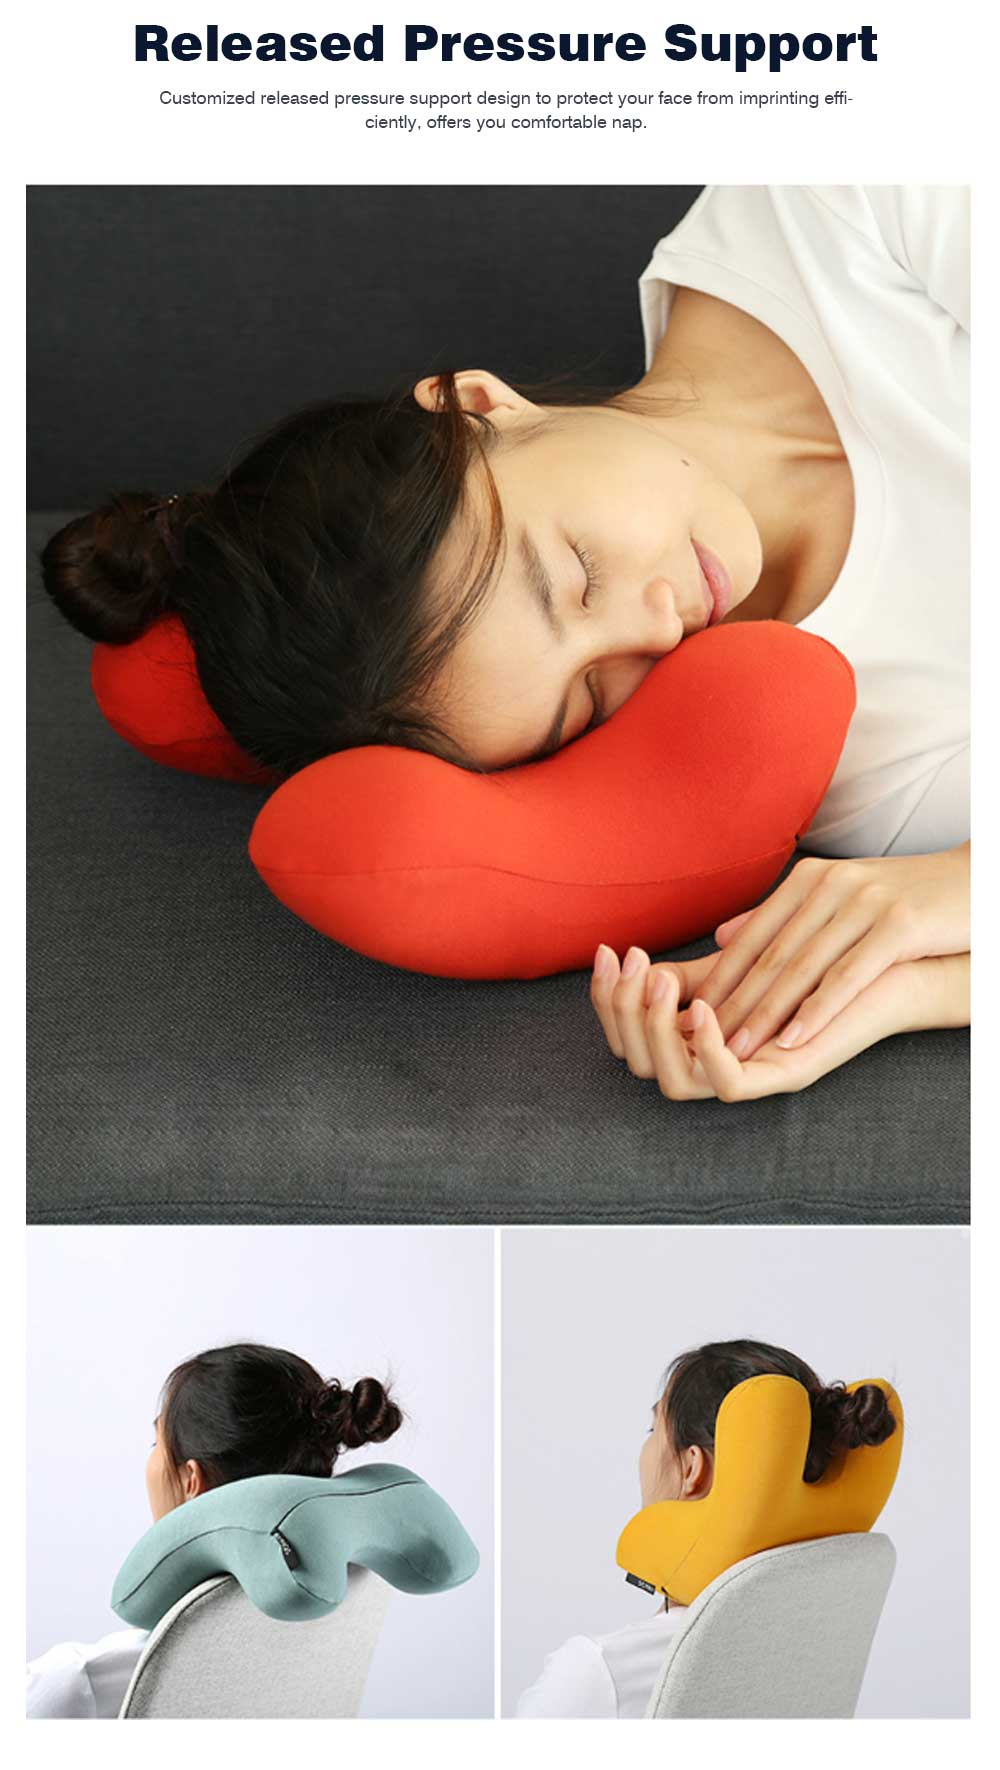 Office Nap Pillow with Humanized Design, Lightweight Nap Pillow for Office Classroom Traveling, Portable Nap Memory Pillow 1